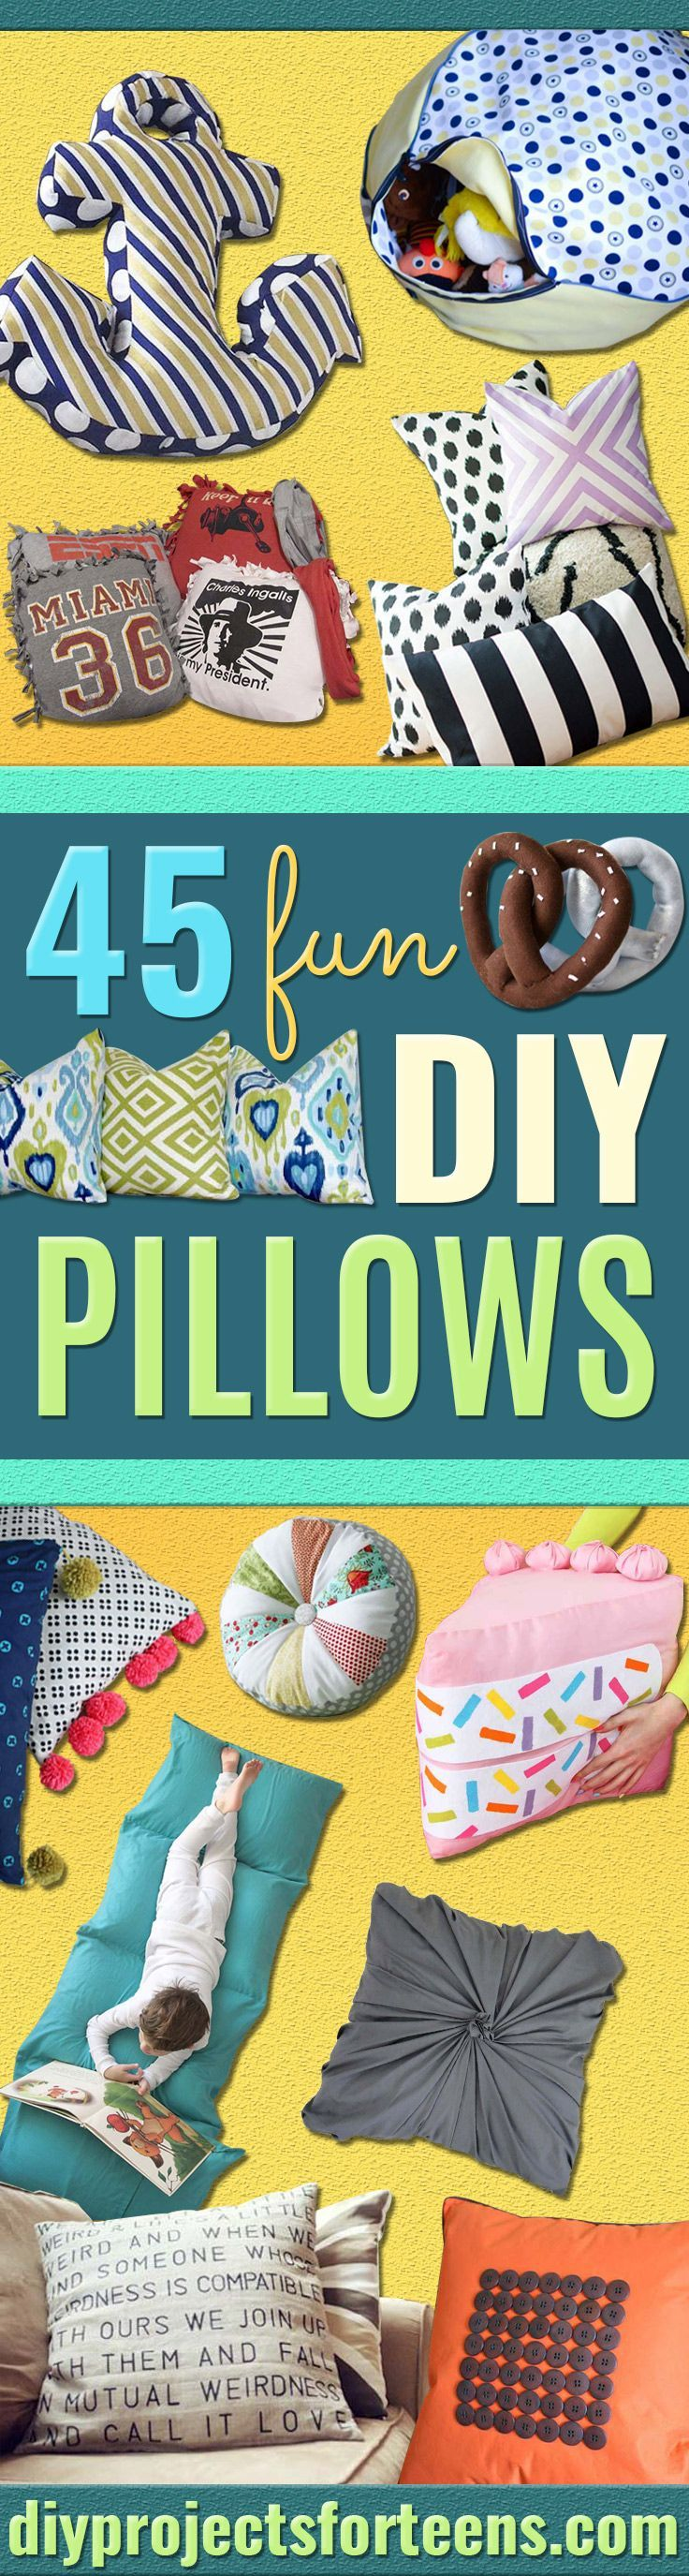 DIY Pillows and Fun Pillow Projects - Creative, Decorative Cases and Covers, Throw Pillows, Cute and Easy Tutorials for Making Crafty Home Decor - Sewing Tutorials and No Sew Ideas for Room and Bedroom Decor for Teens, Teenagers and Adults